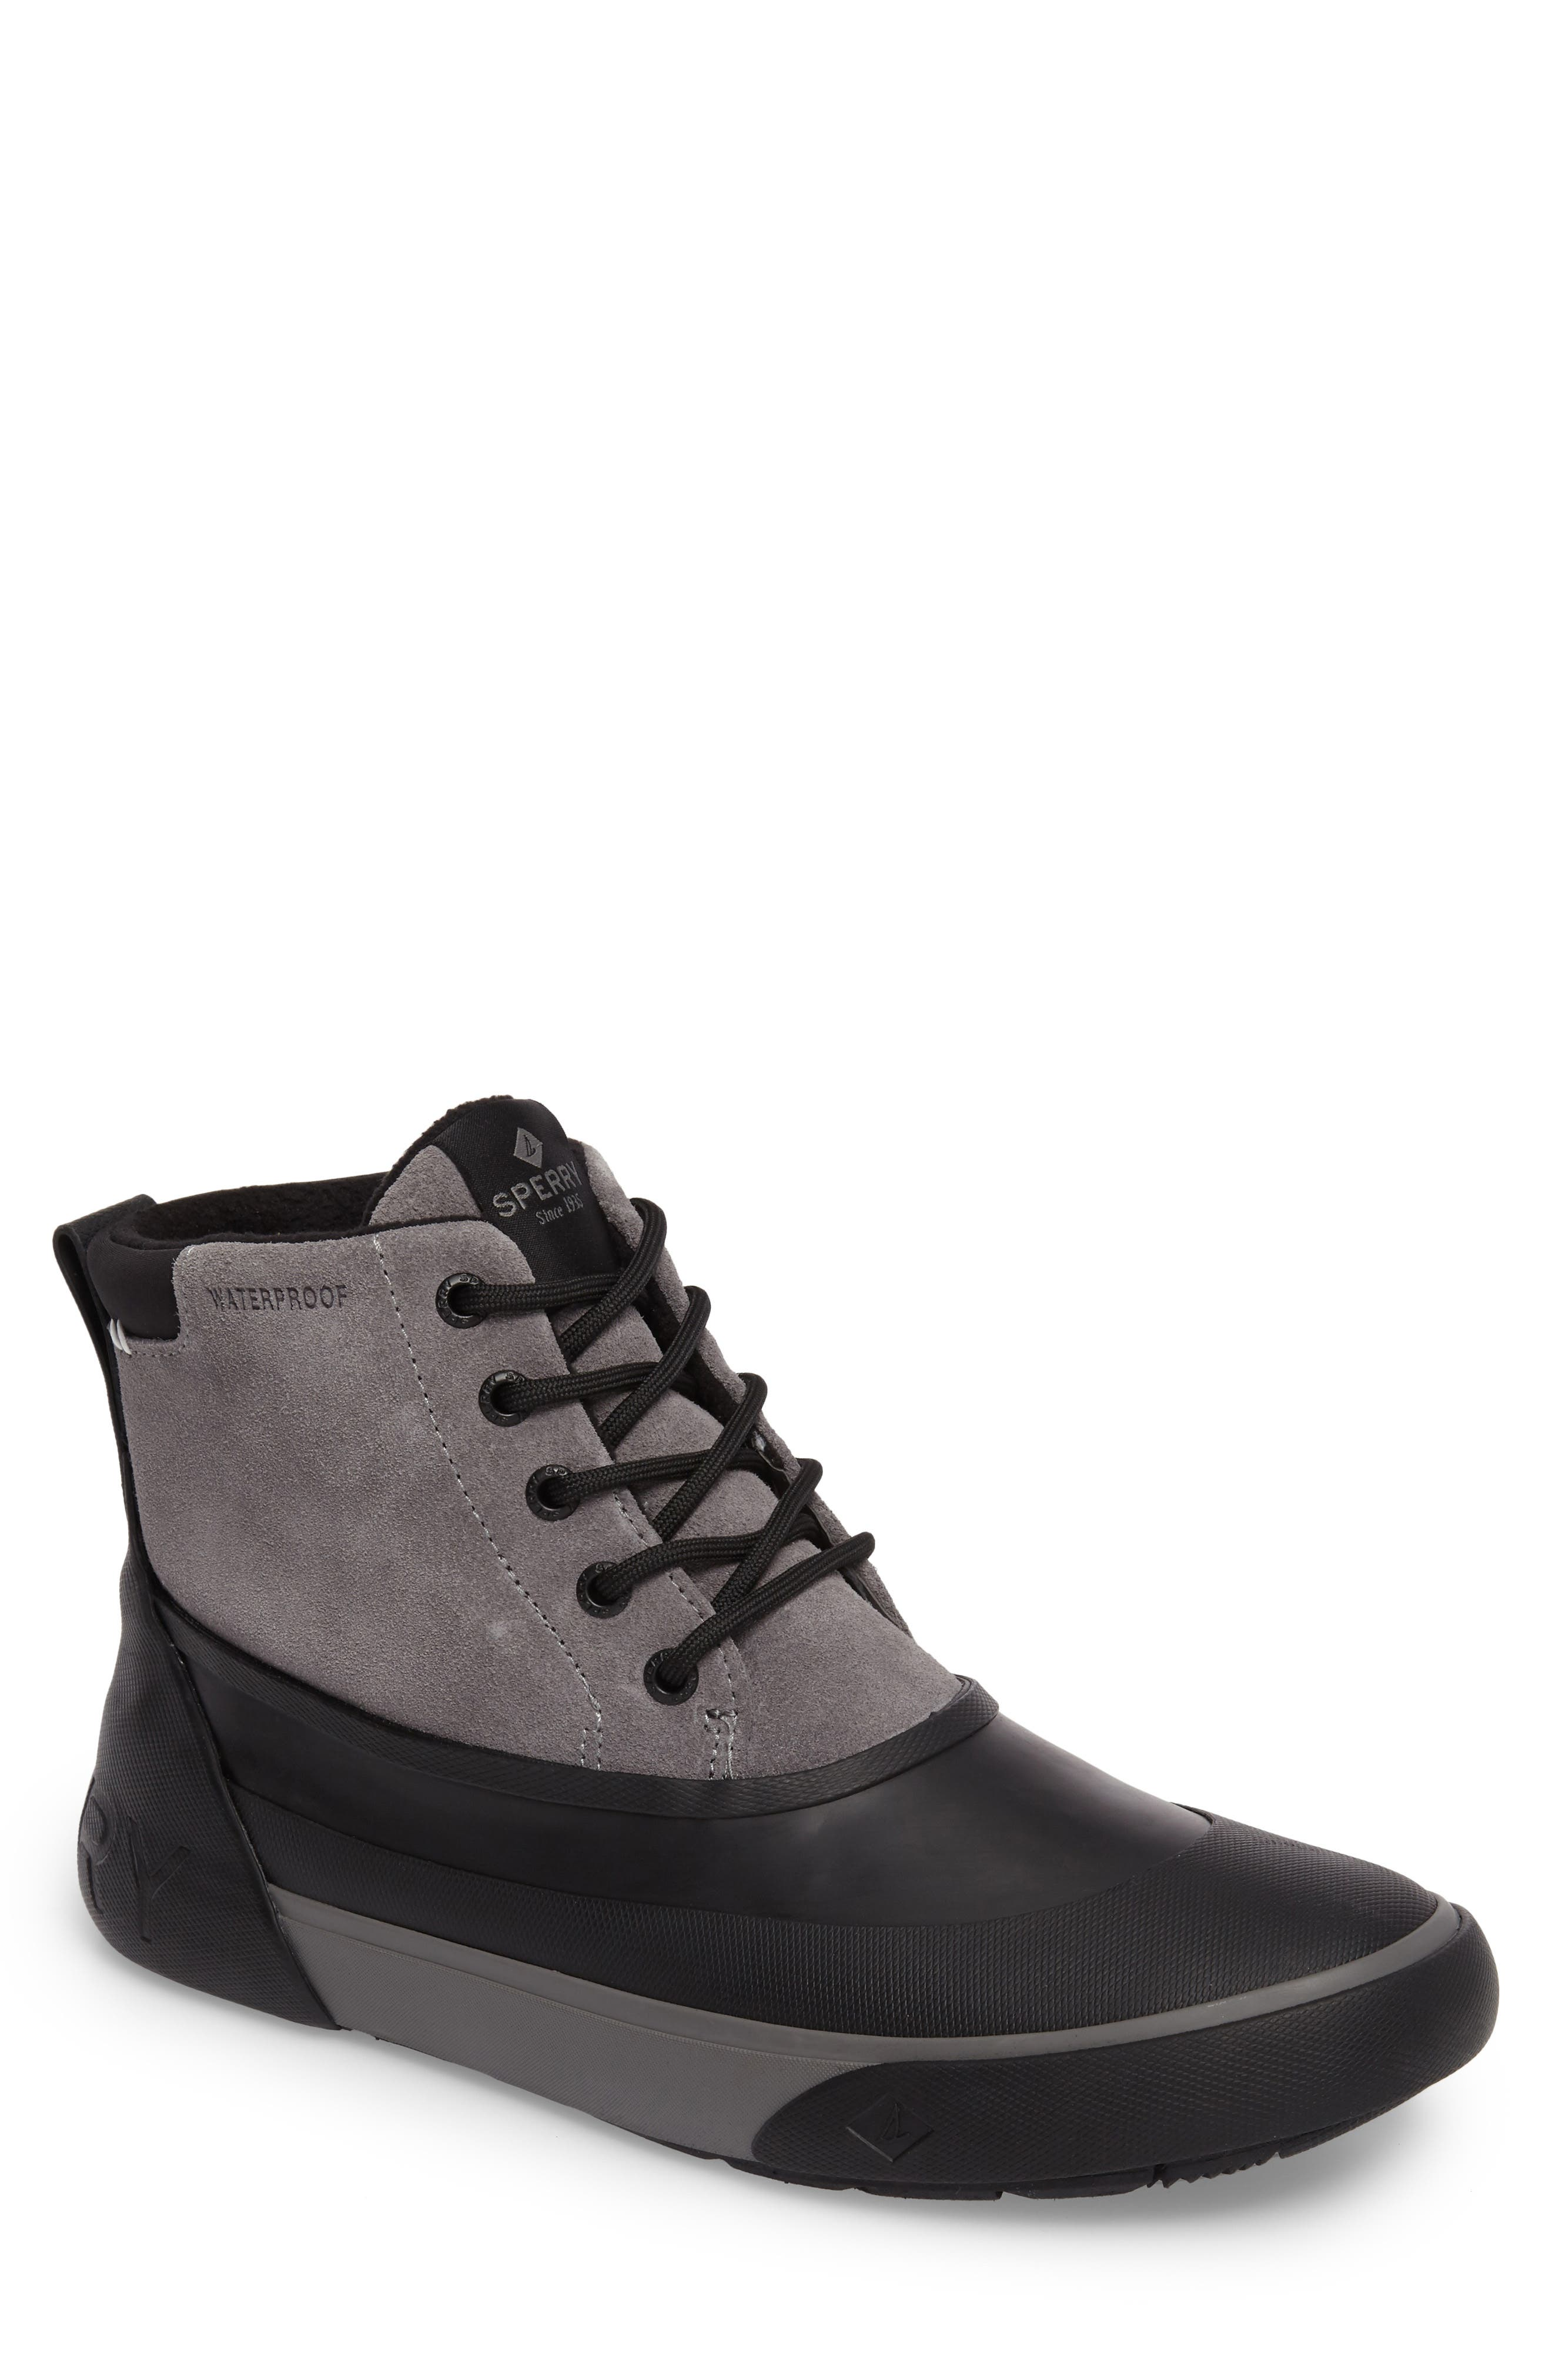 Main Image - Sperry Cutwater Boot (Men)